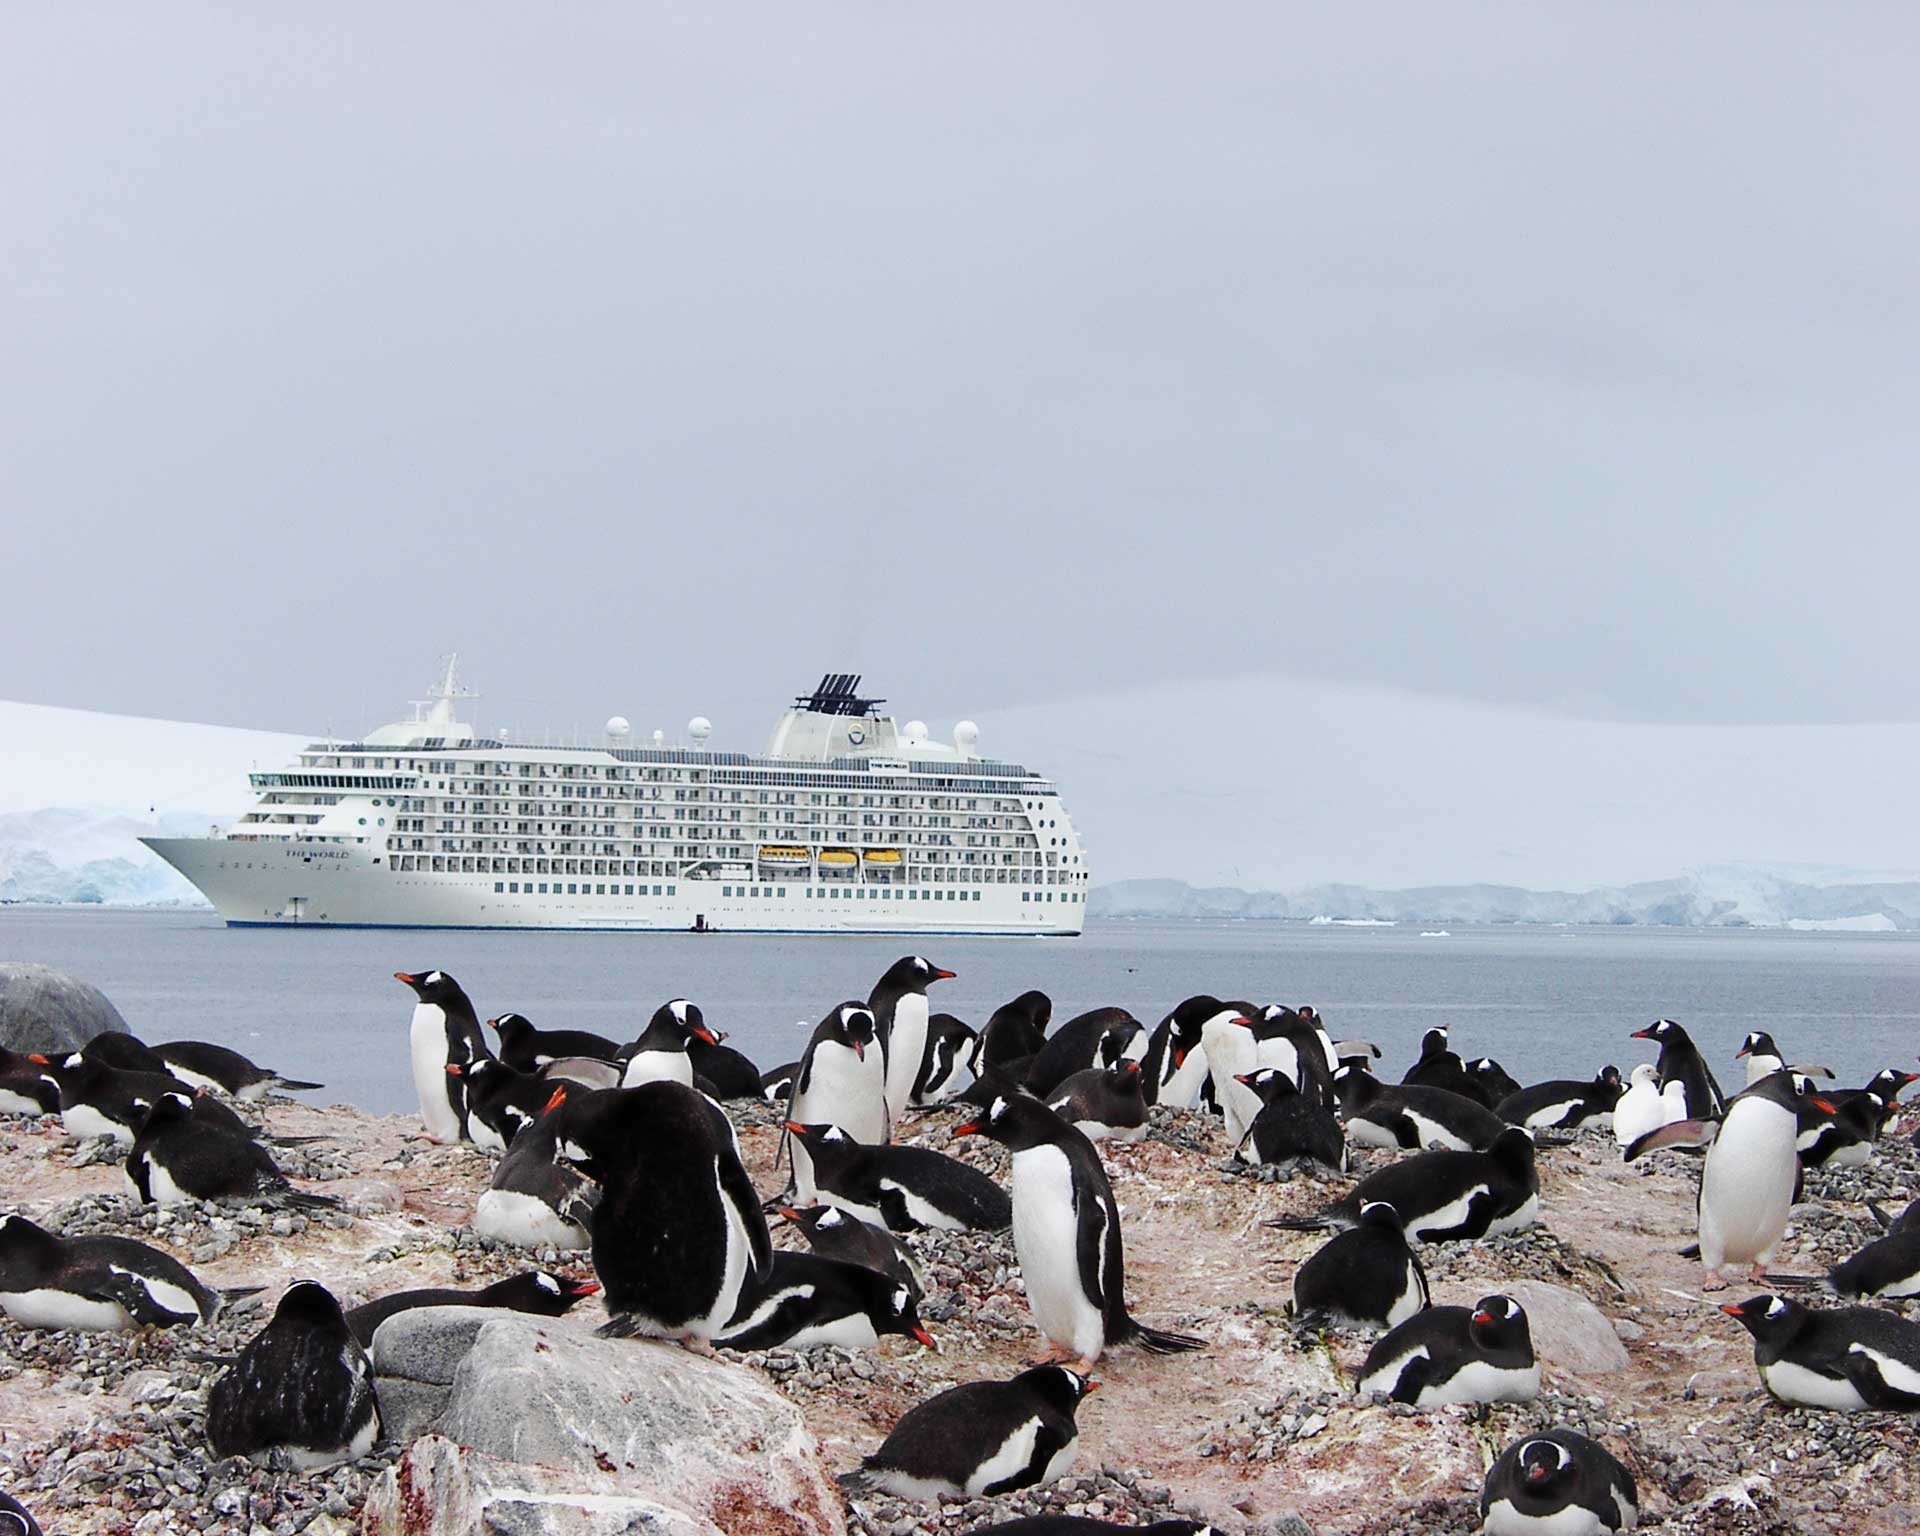 A flock of penguins in the foreground with a large passenger liner in the water behind them